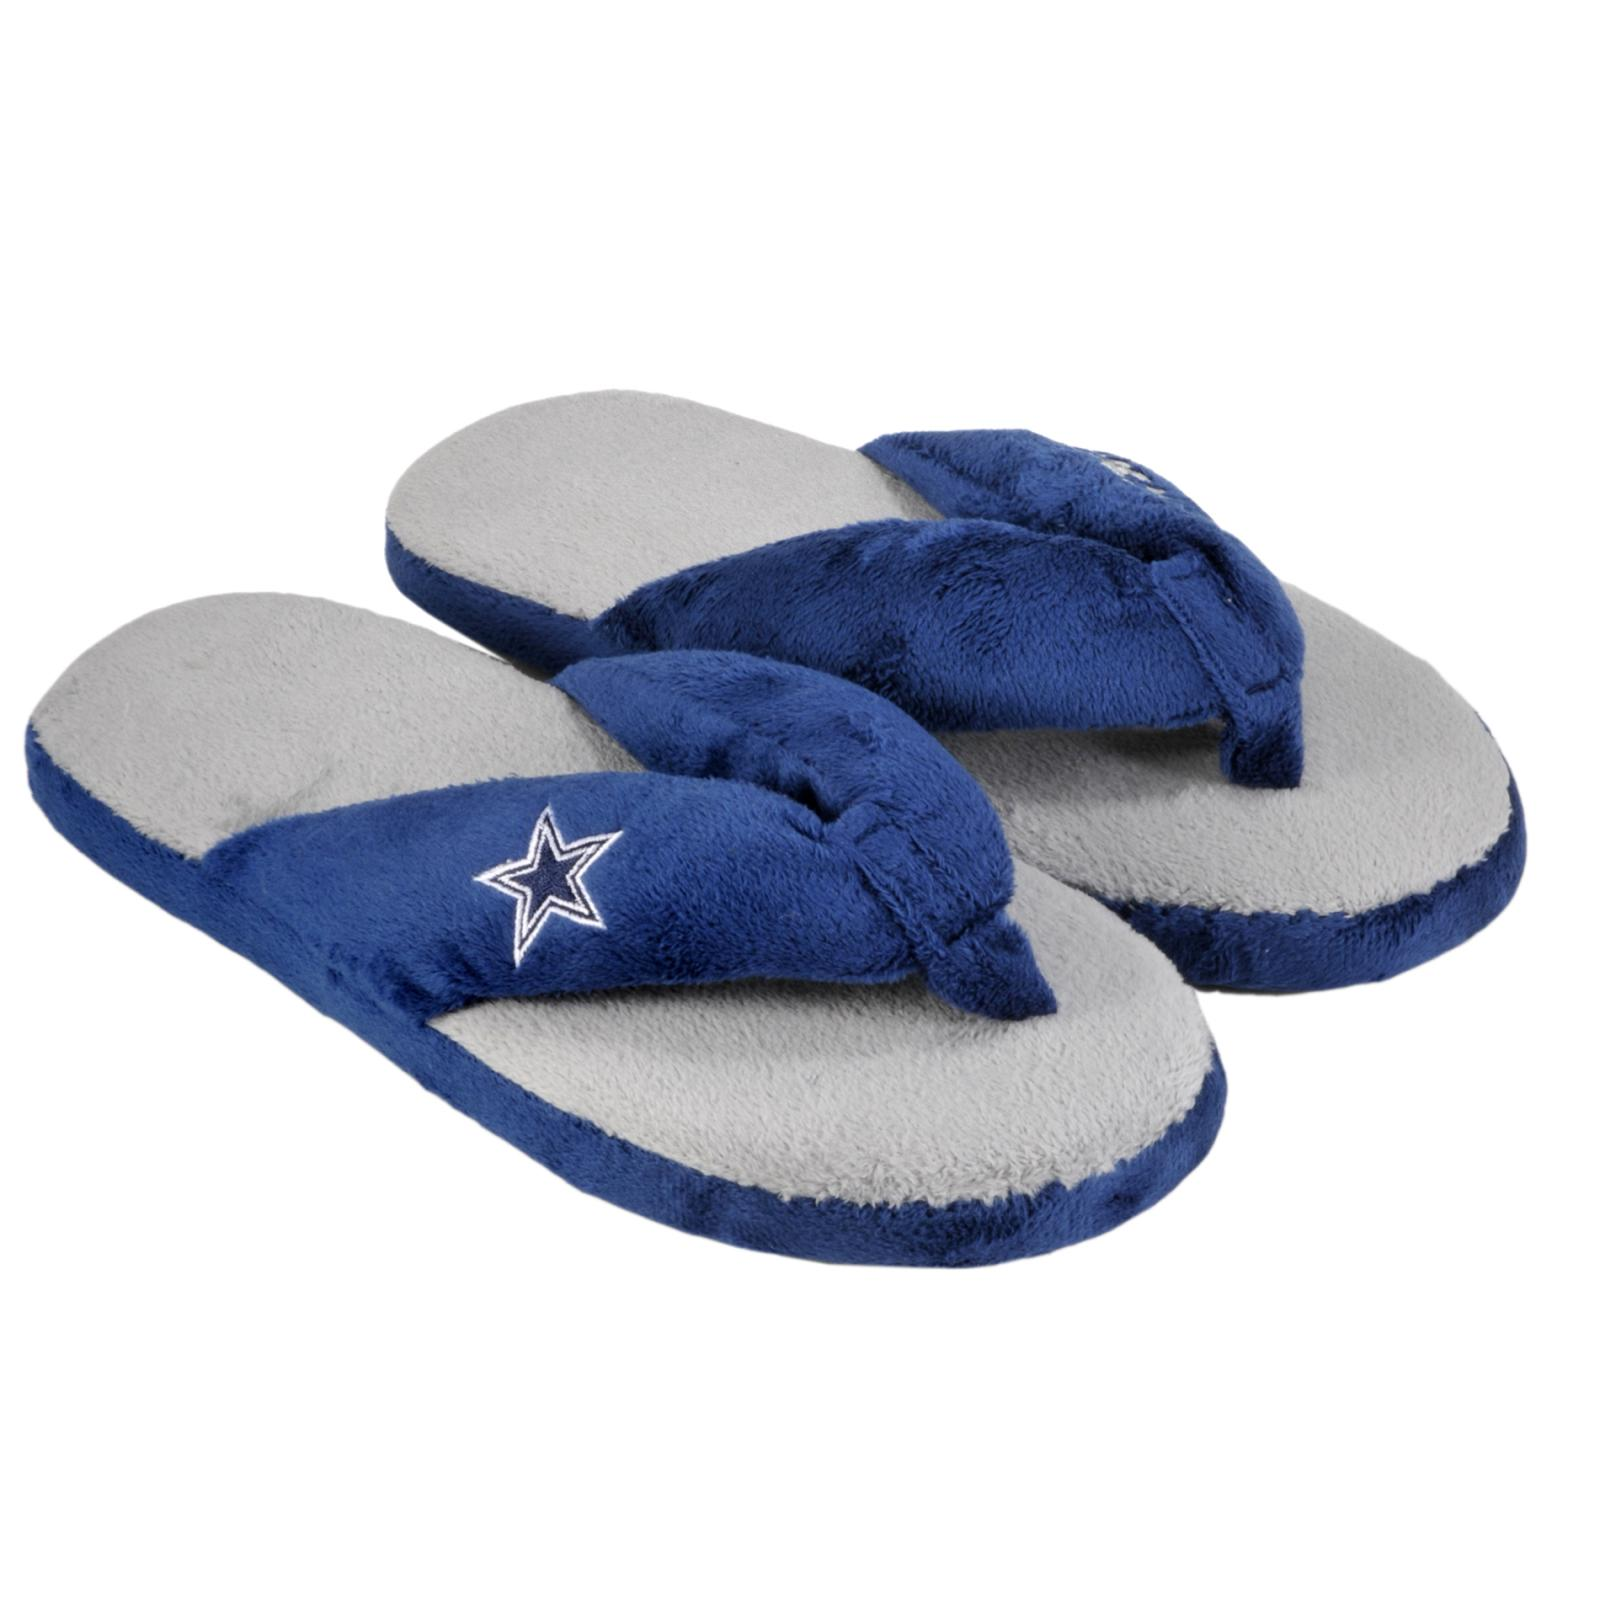 Dallas Cowboys Women's Flip Flop Thong Slipper